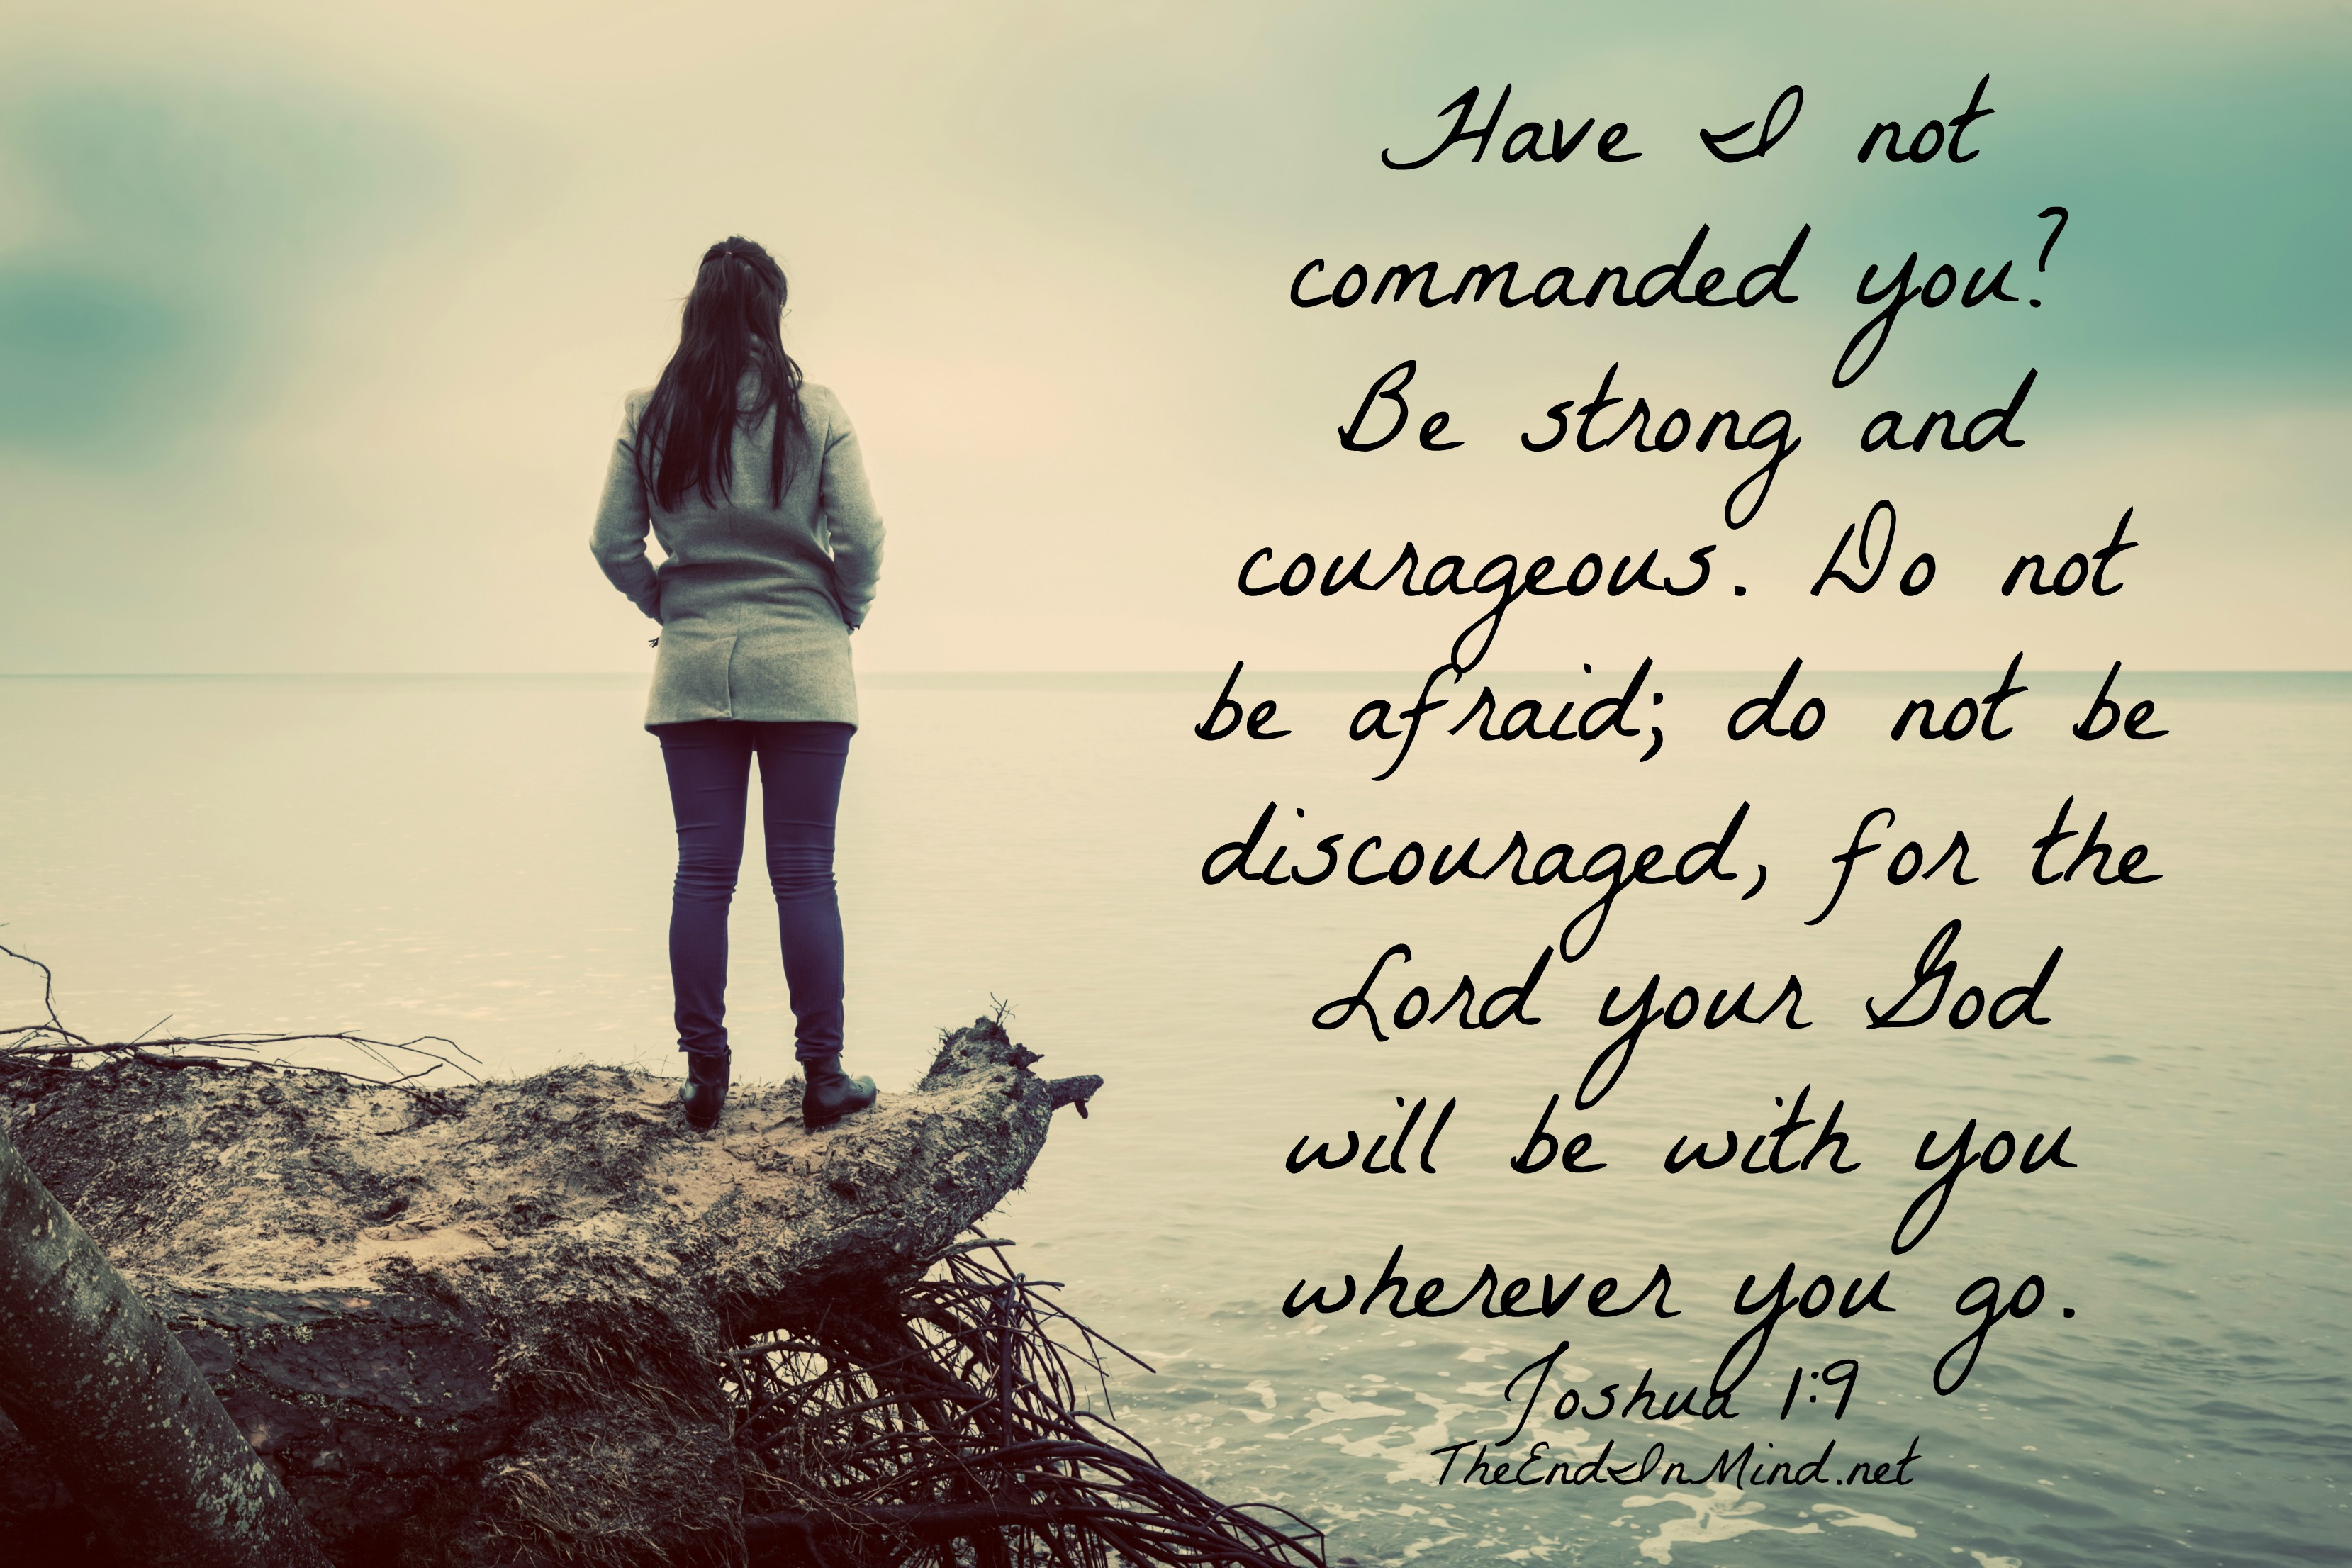 Be Strong And Courageous The End In Mind